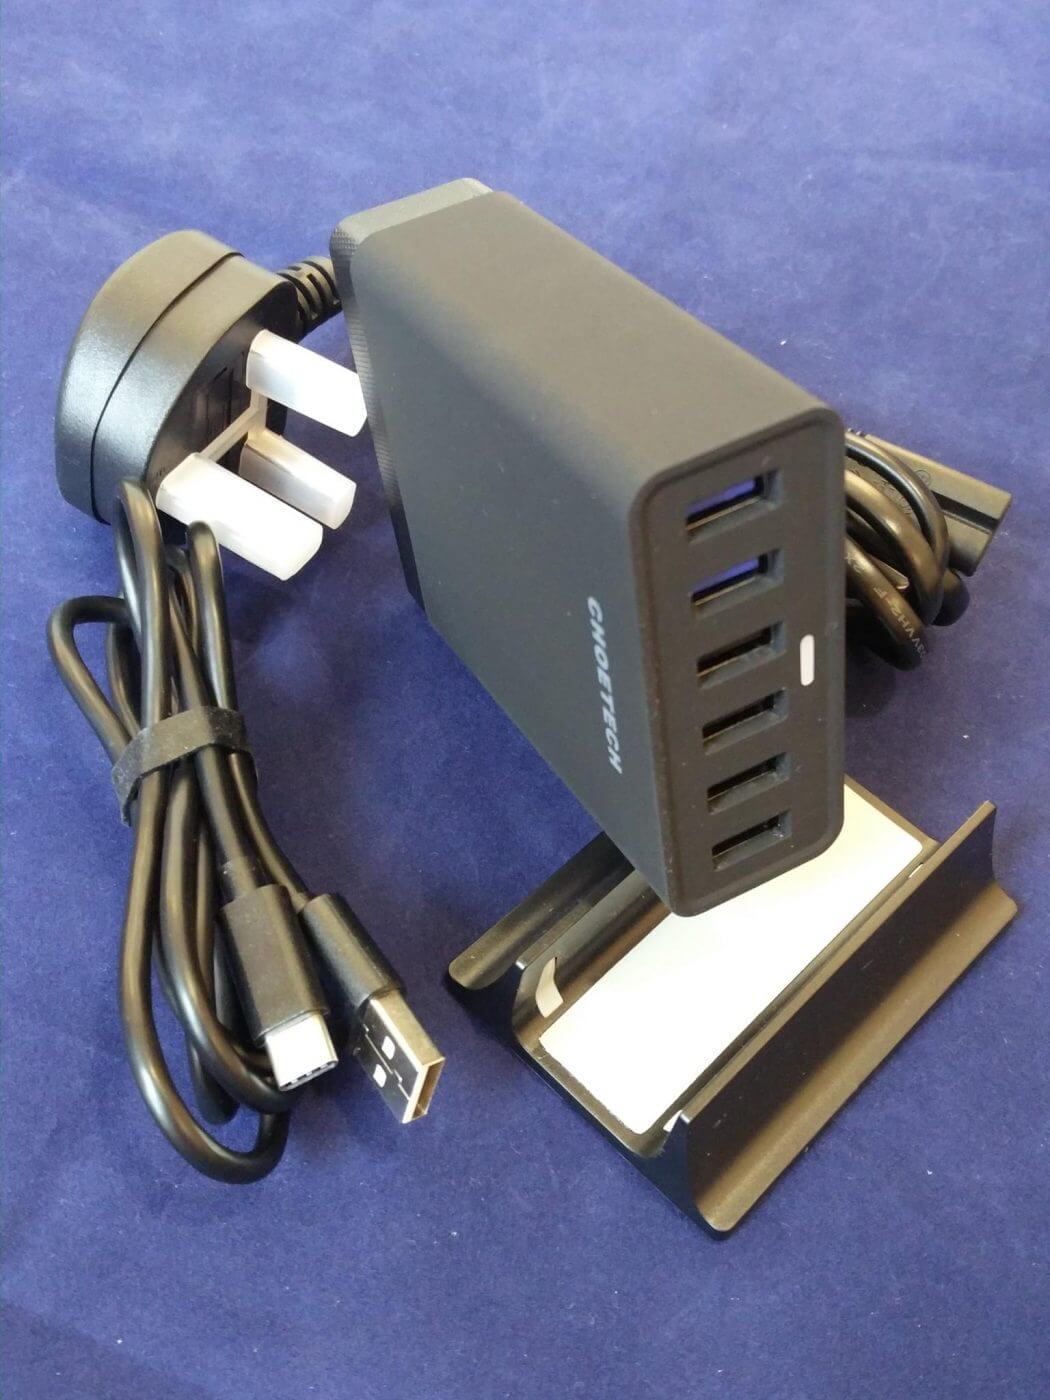 Choetech 50W 6 port charger